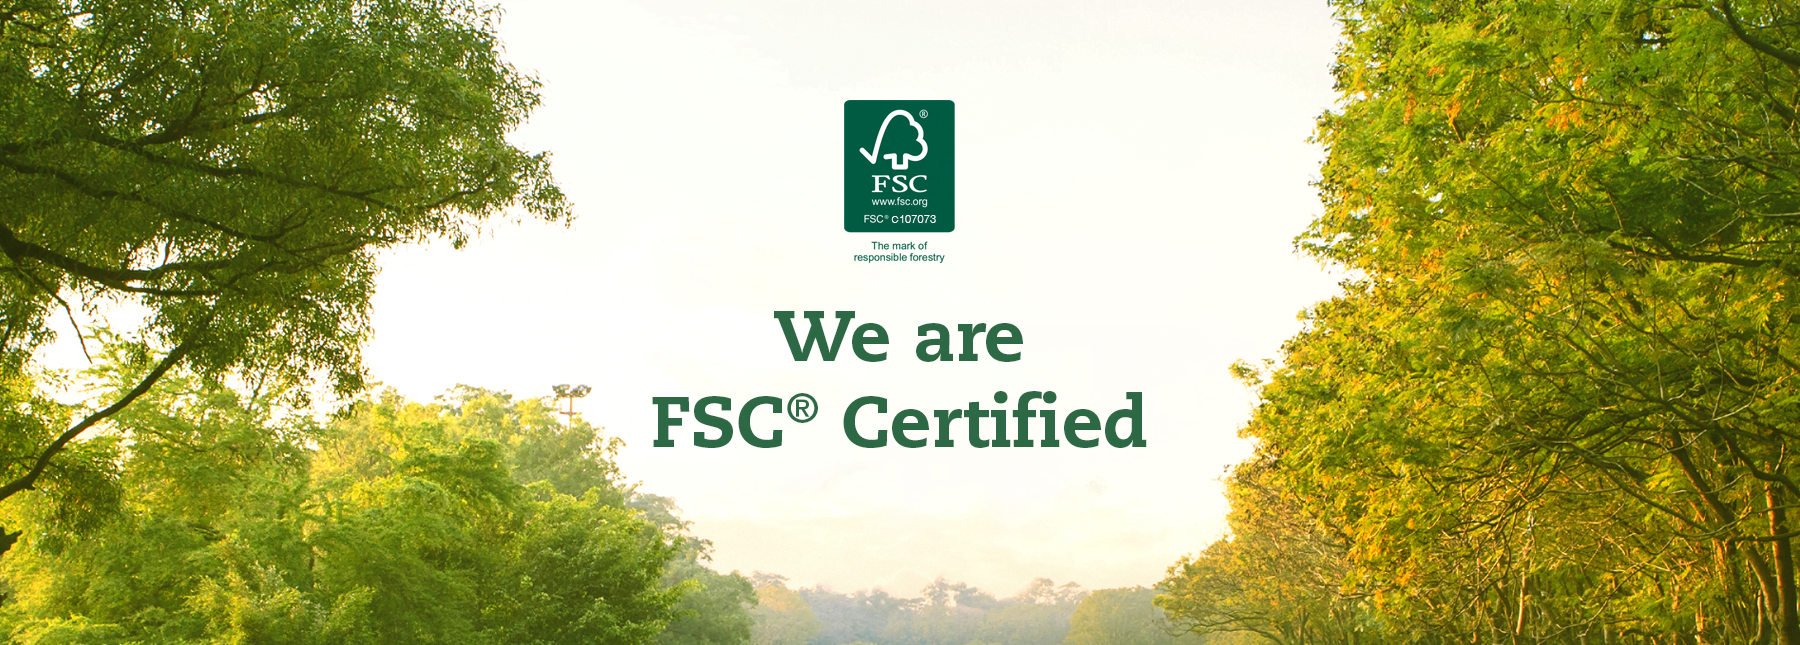 anchor fast are fsc certified